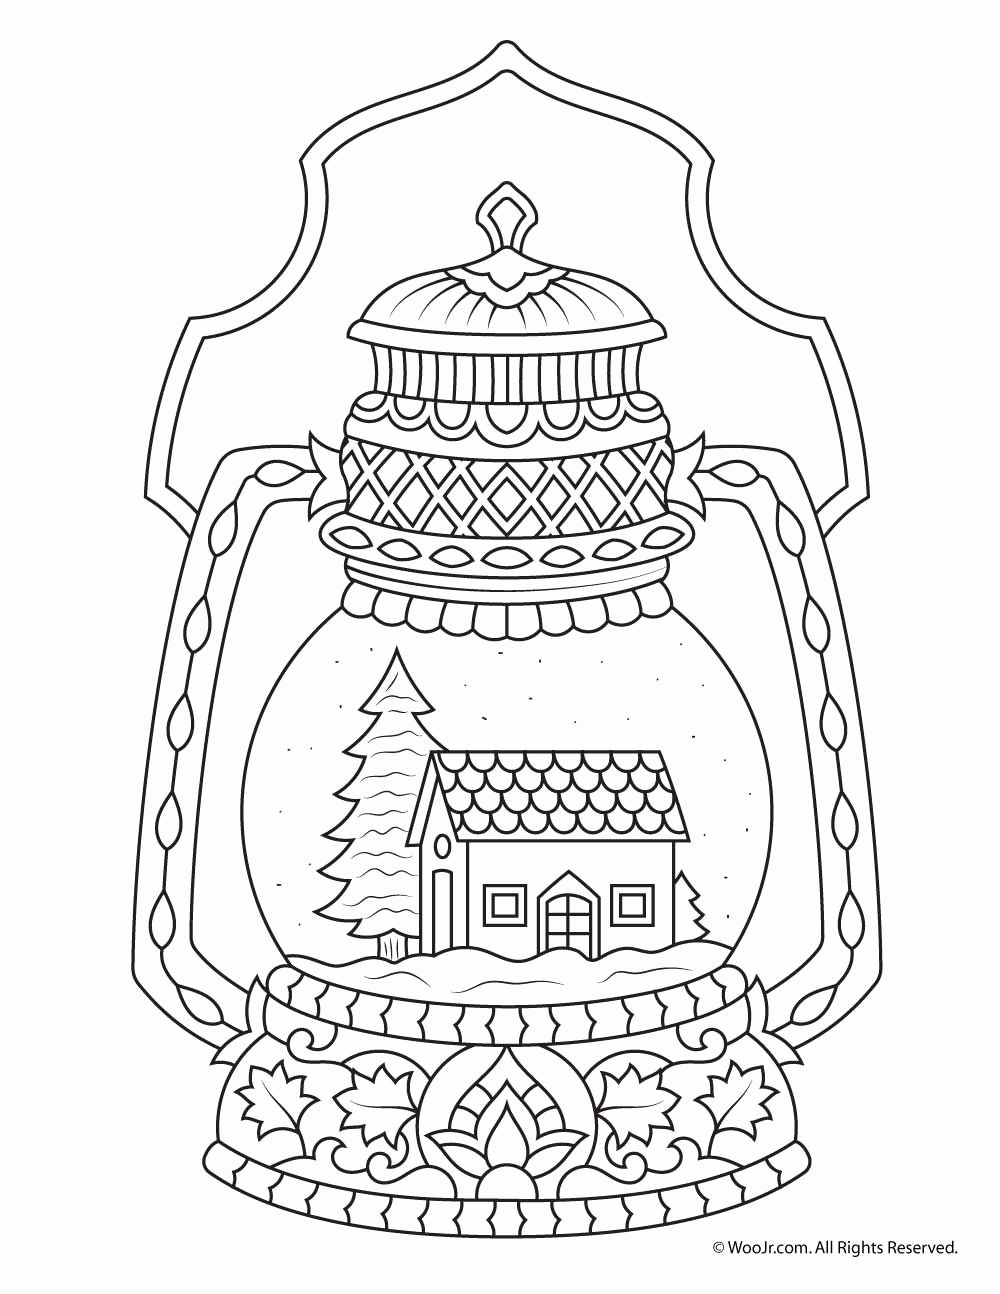 Pin By Alicia Hortal On Jul Coloring Pages Winter Christmas Coloring Sheets Santa Coloring Pages